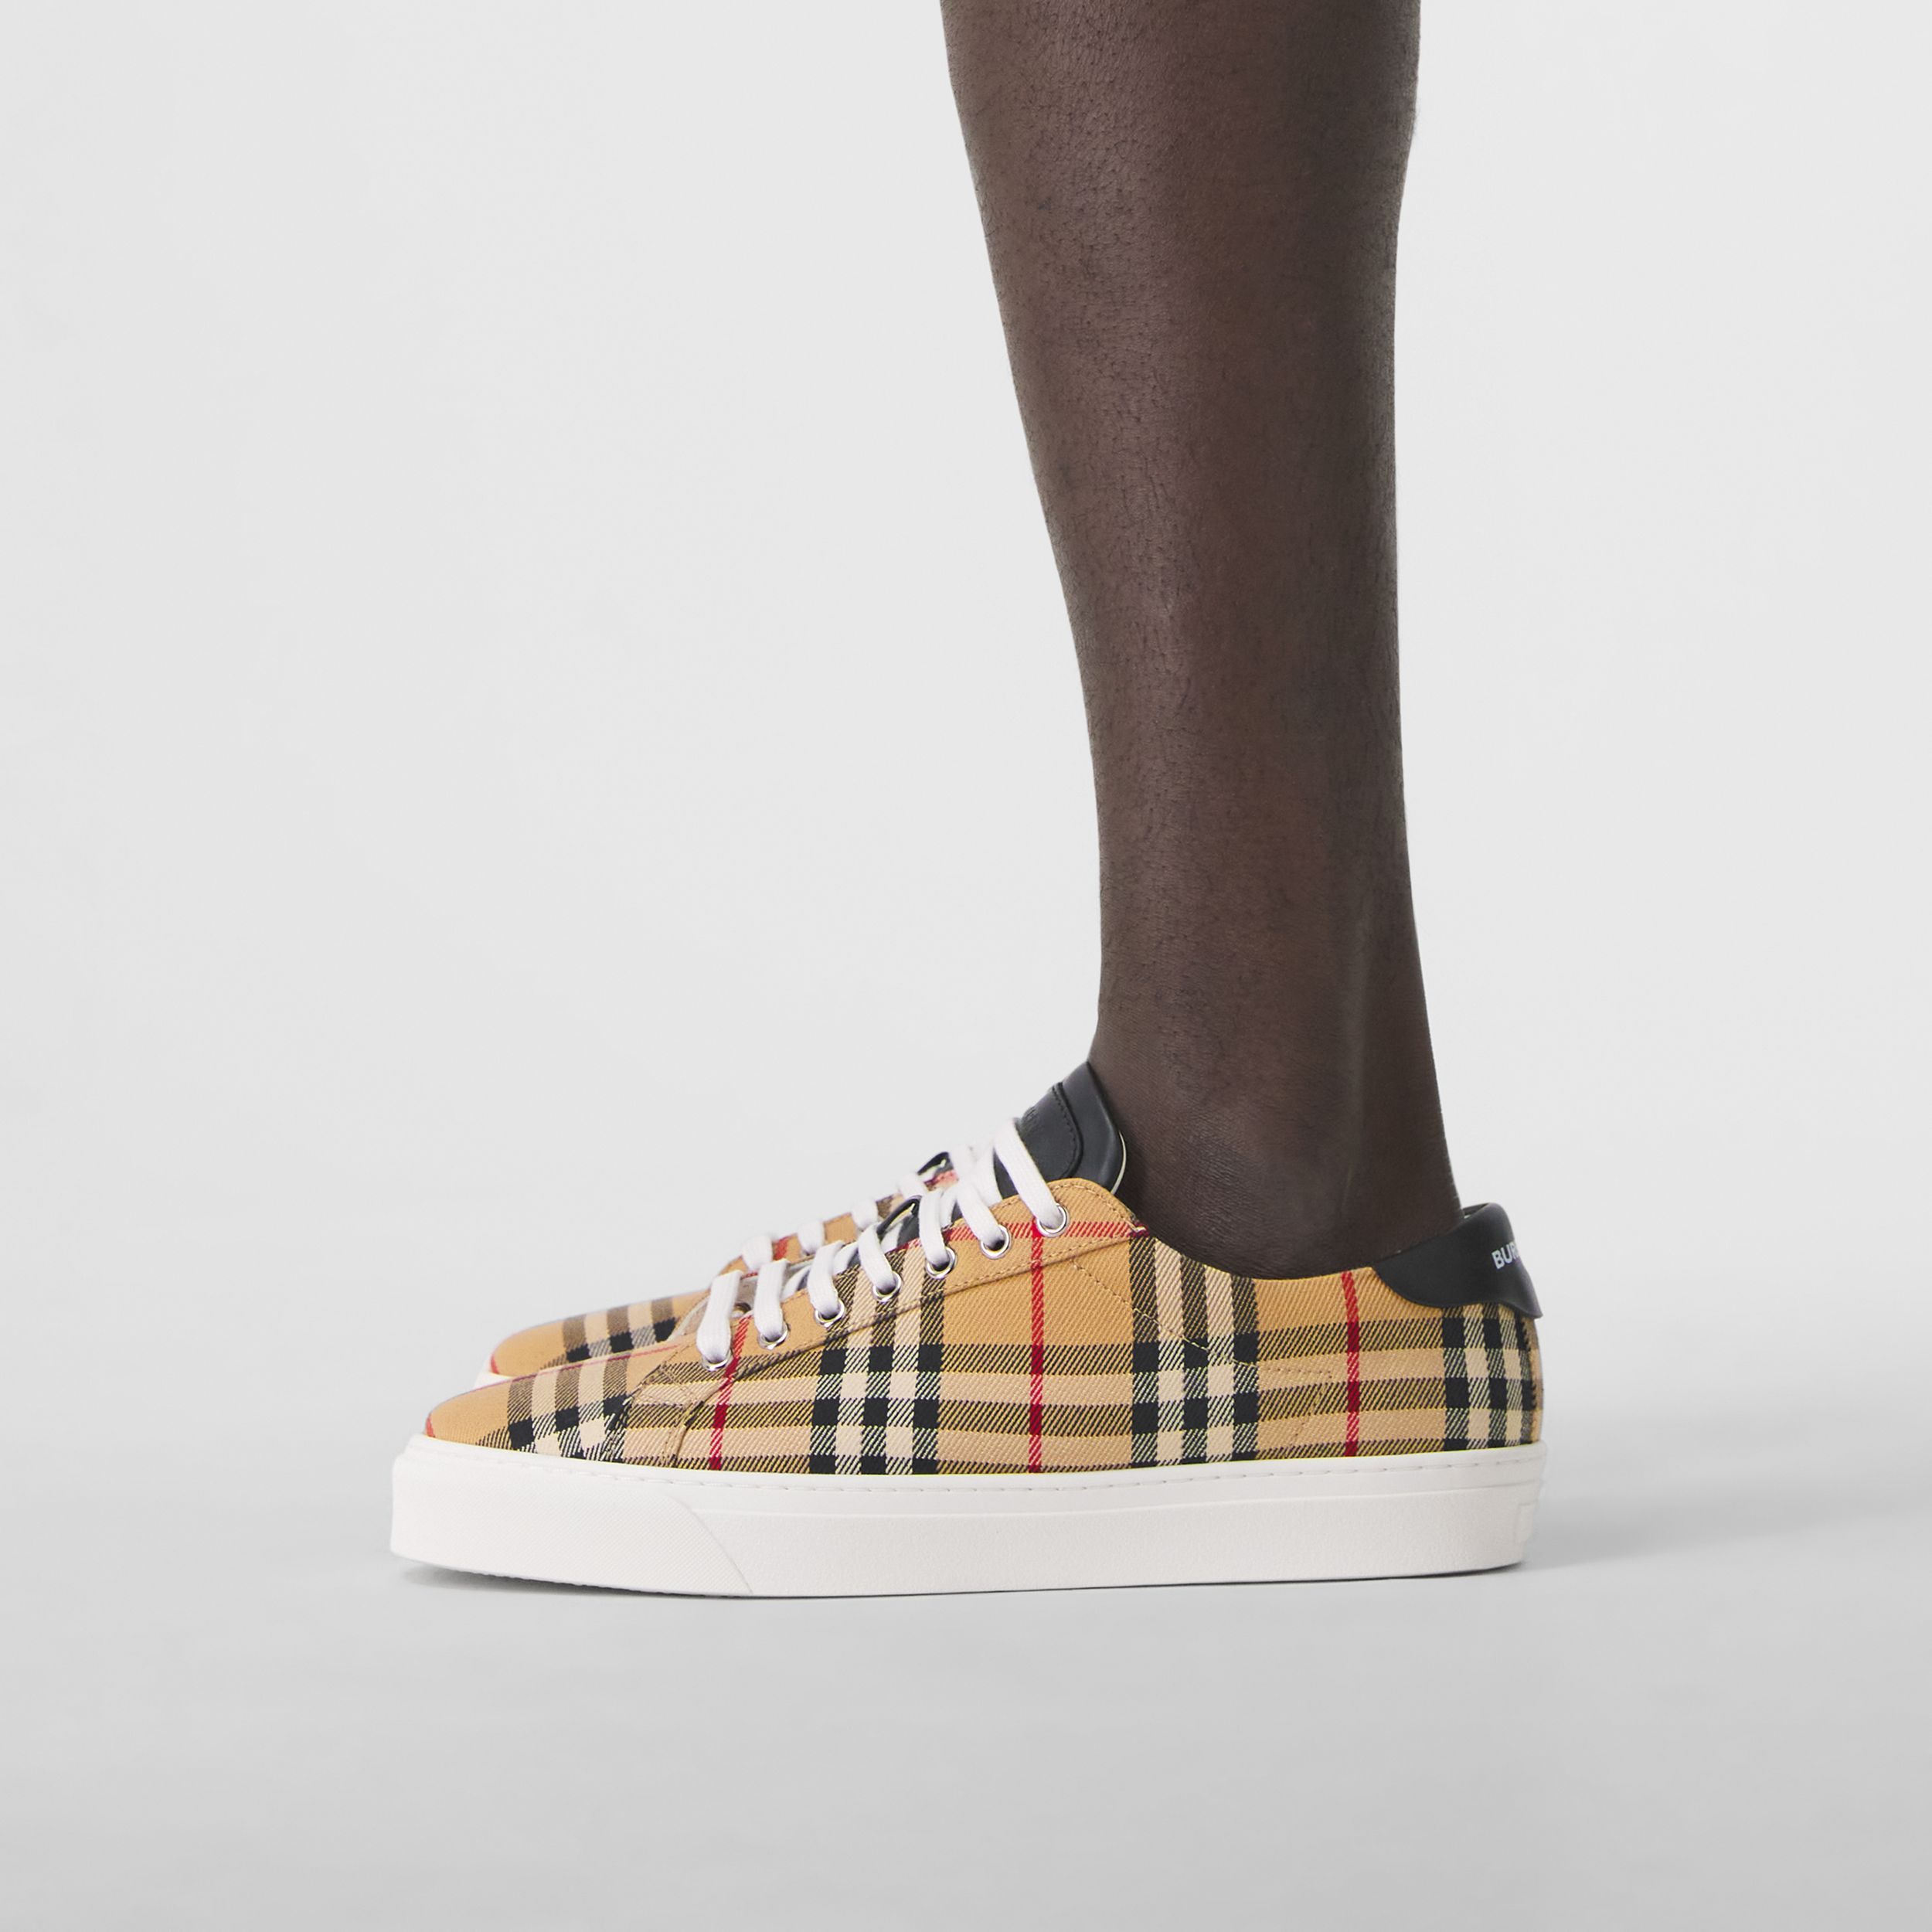 Bio-based Sole Vintage Check and Leather Sneakers in Archive Beige - Men | Burberry - 3